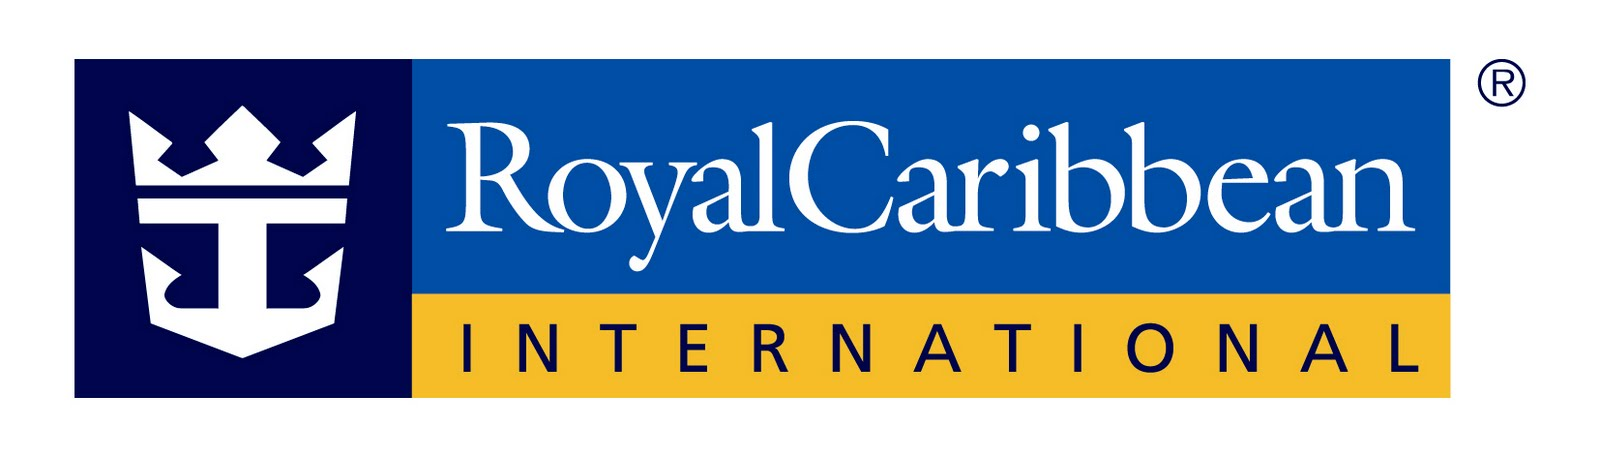 2 Logo Royal Caribbean